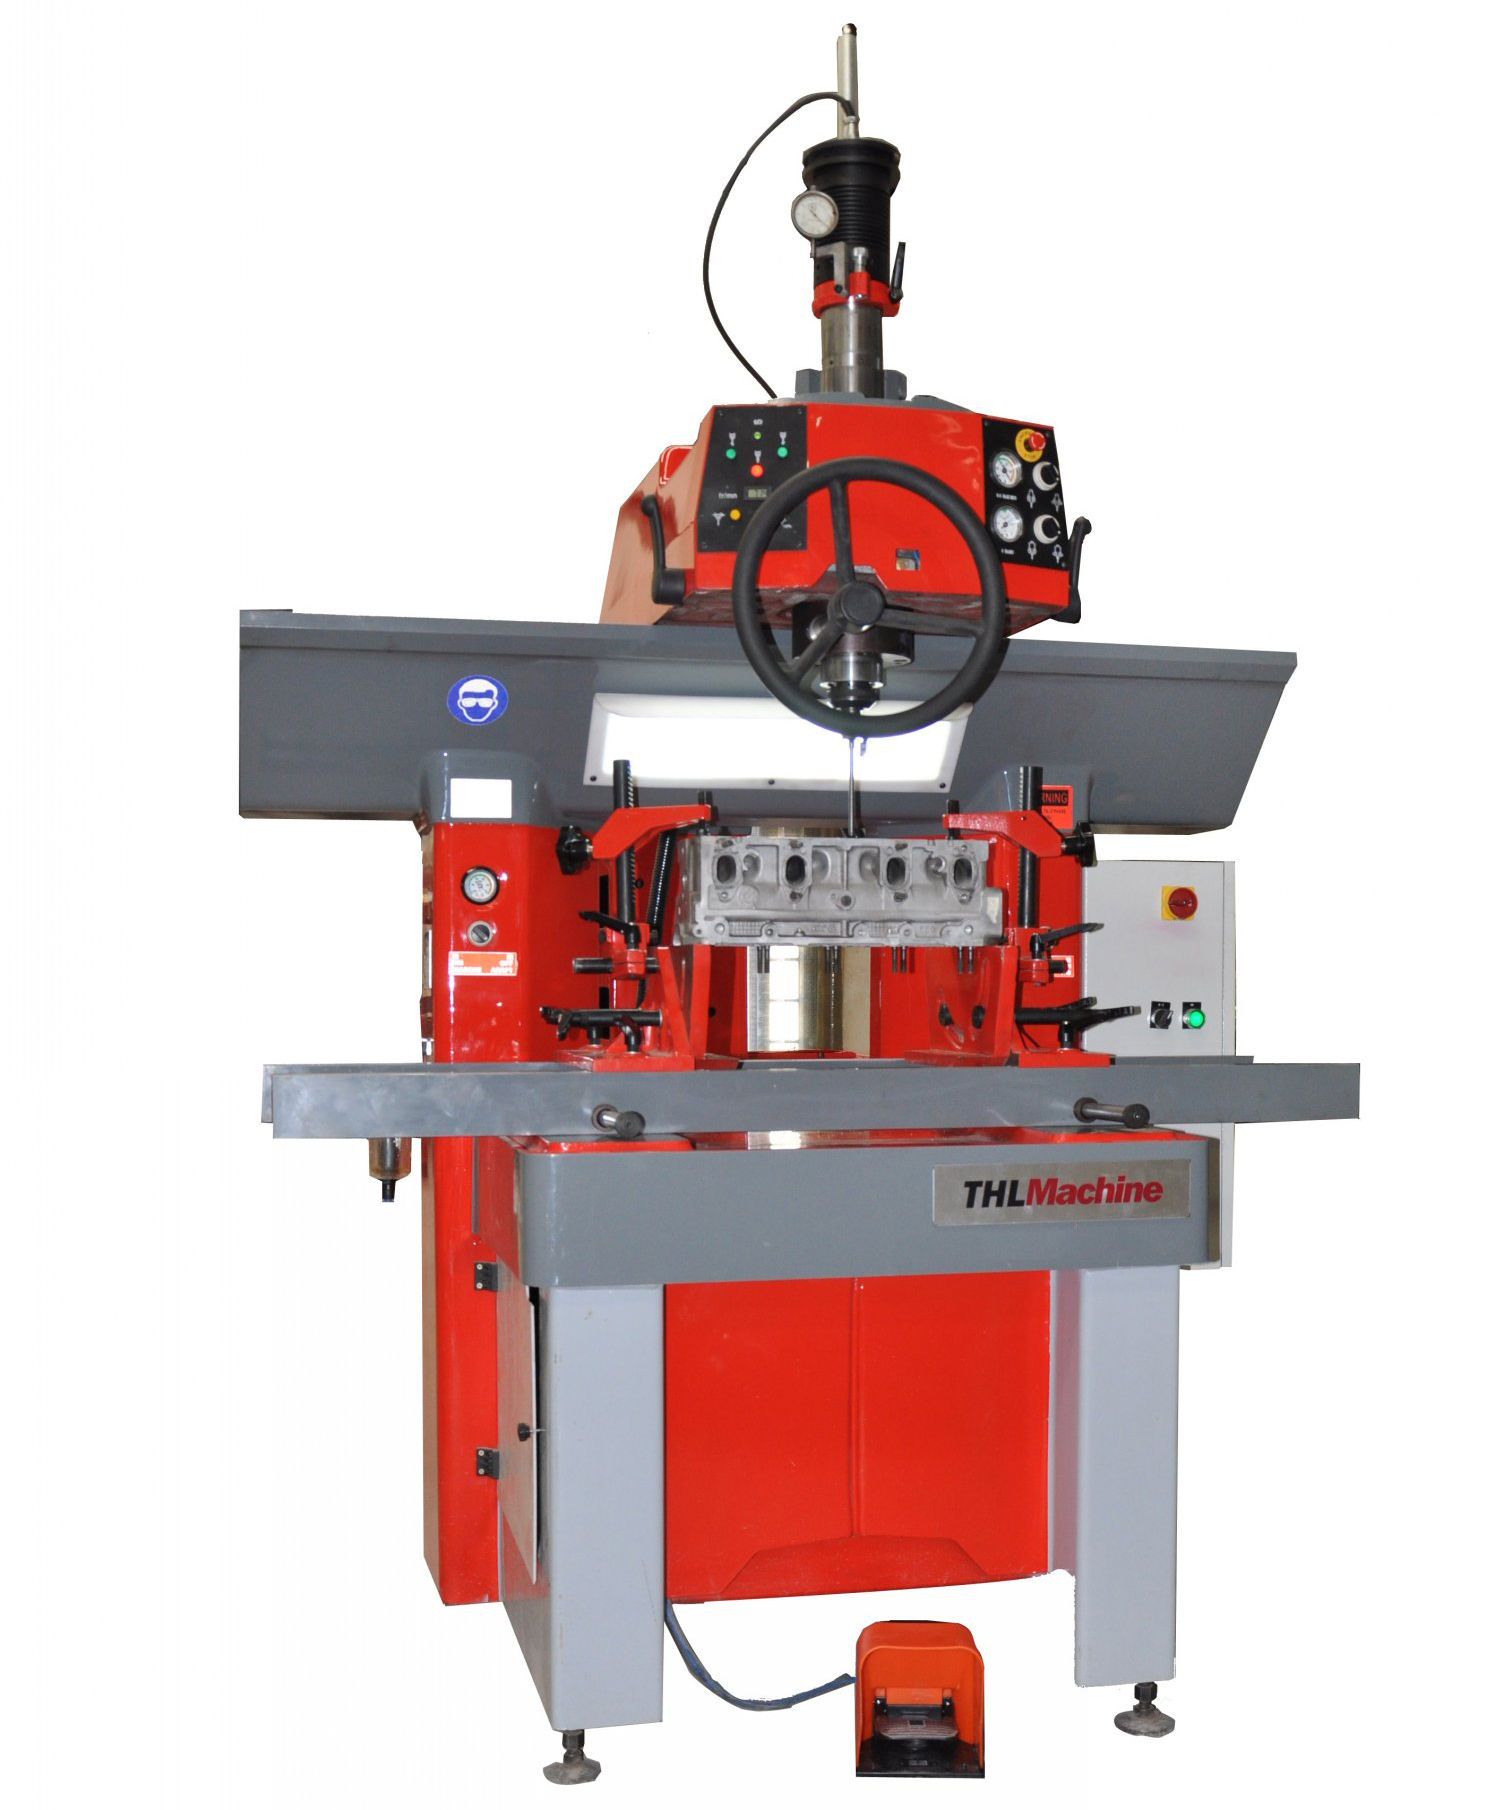 Valve Seat Cutting Machine - THL 3.0 (analgoue of serdi 3.0 large)